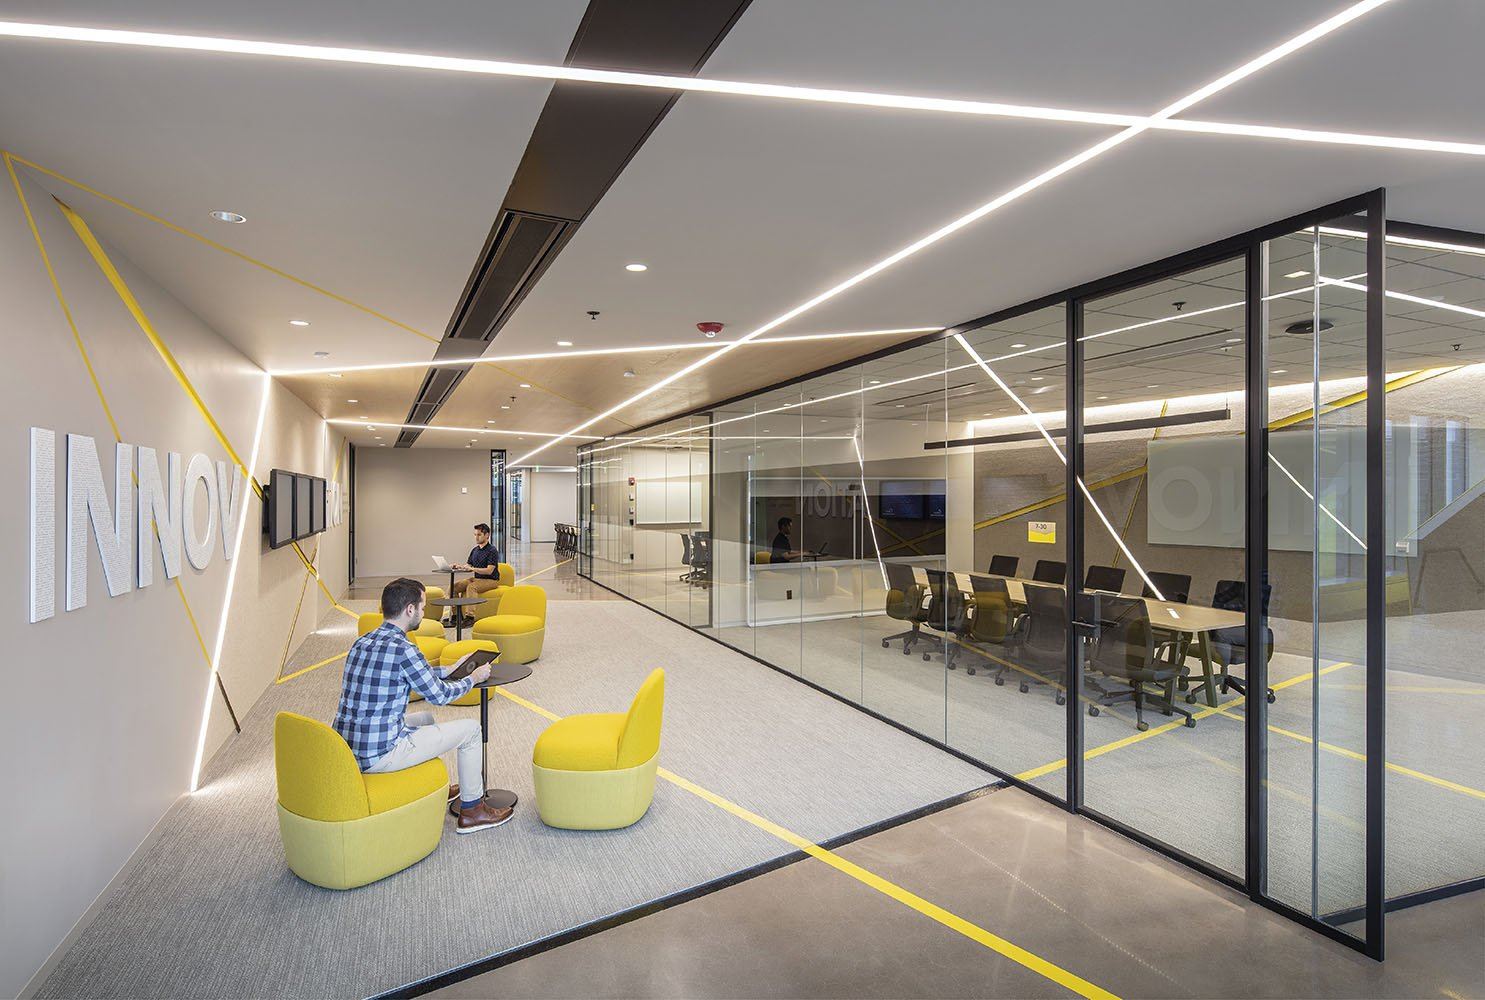 The design team drew inspiration from the idea of network connectivity to tie the office space together Andy Caulfield